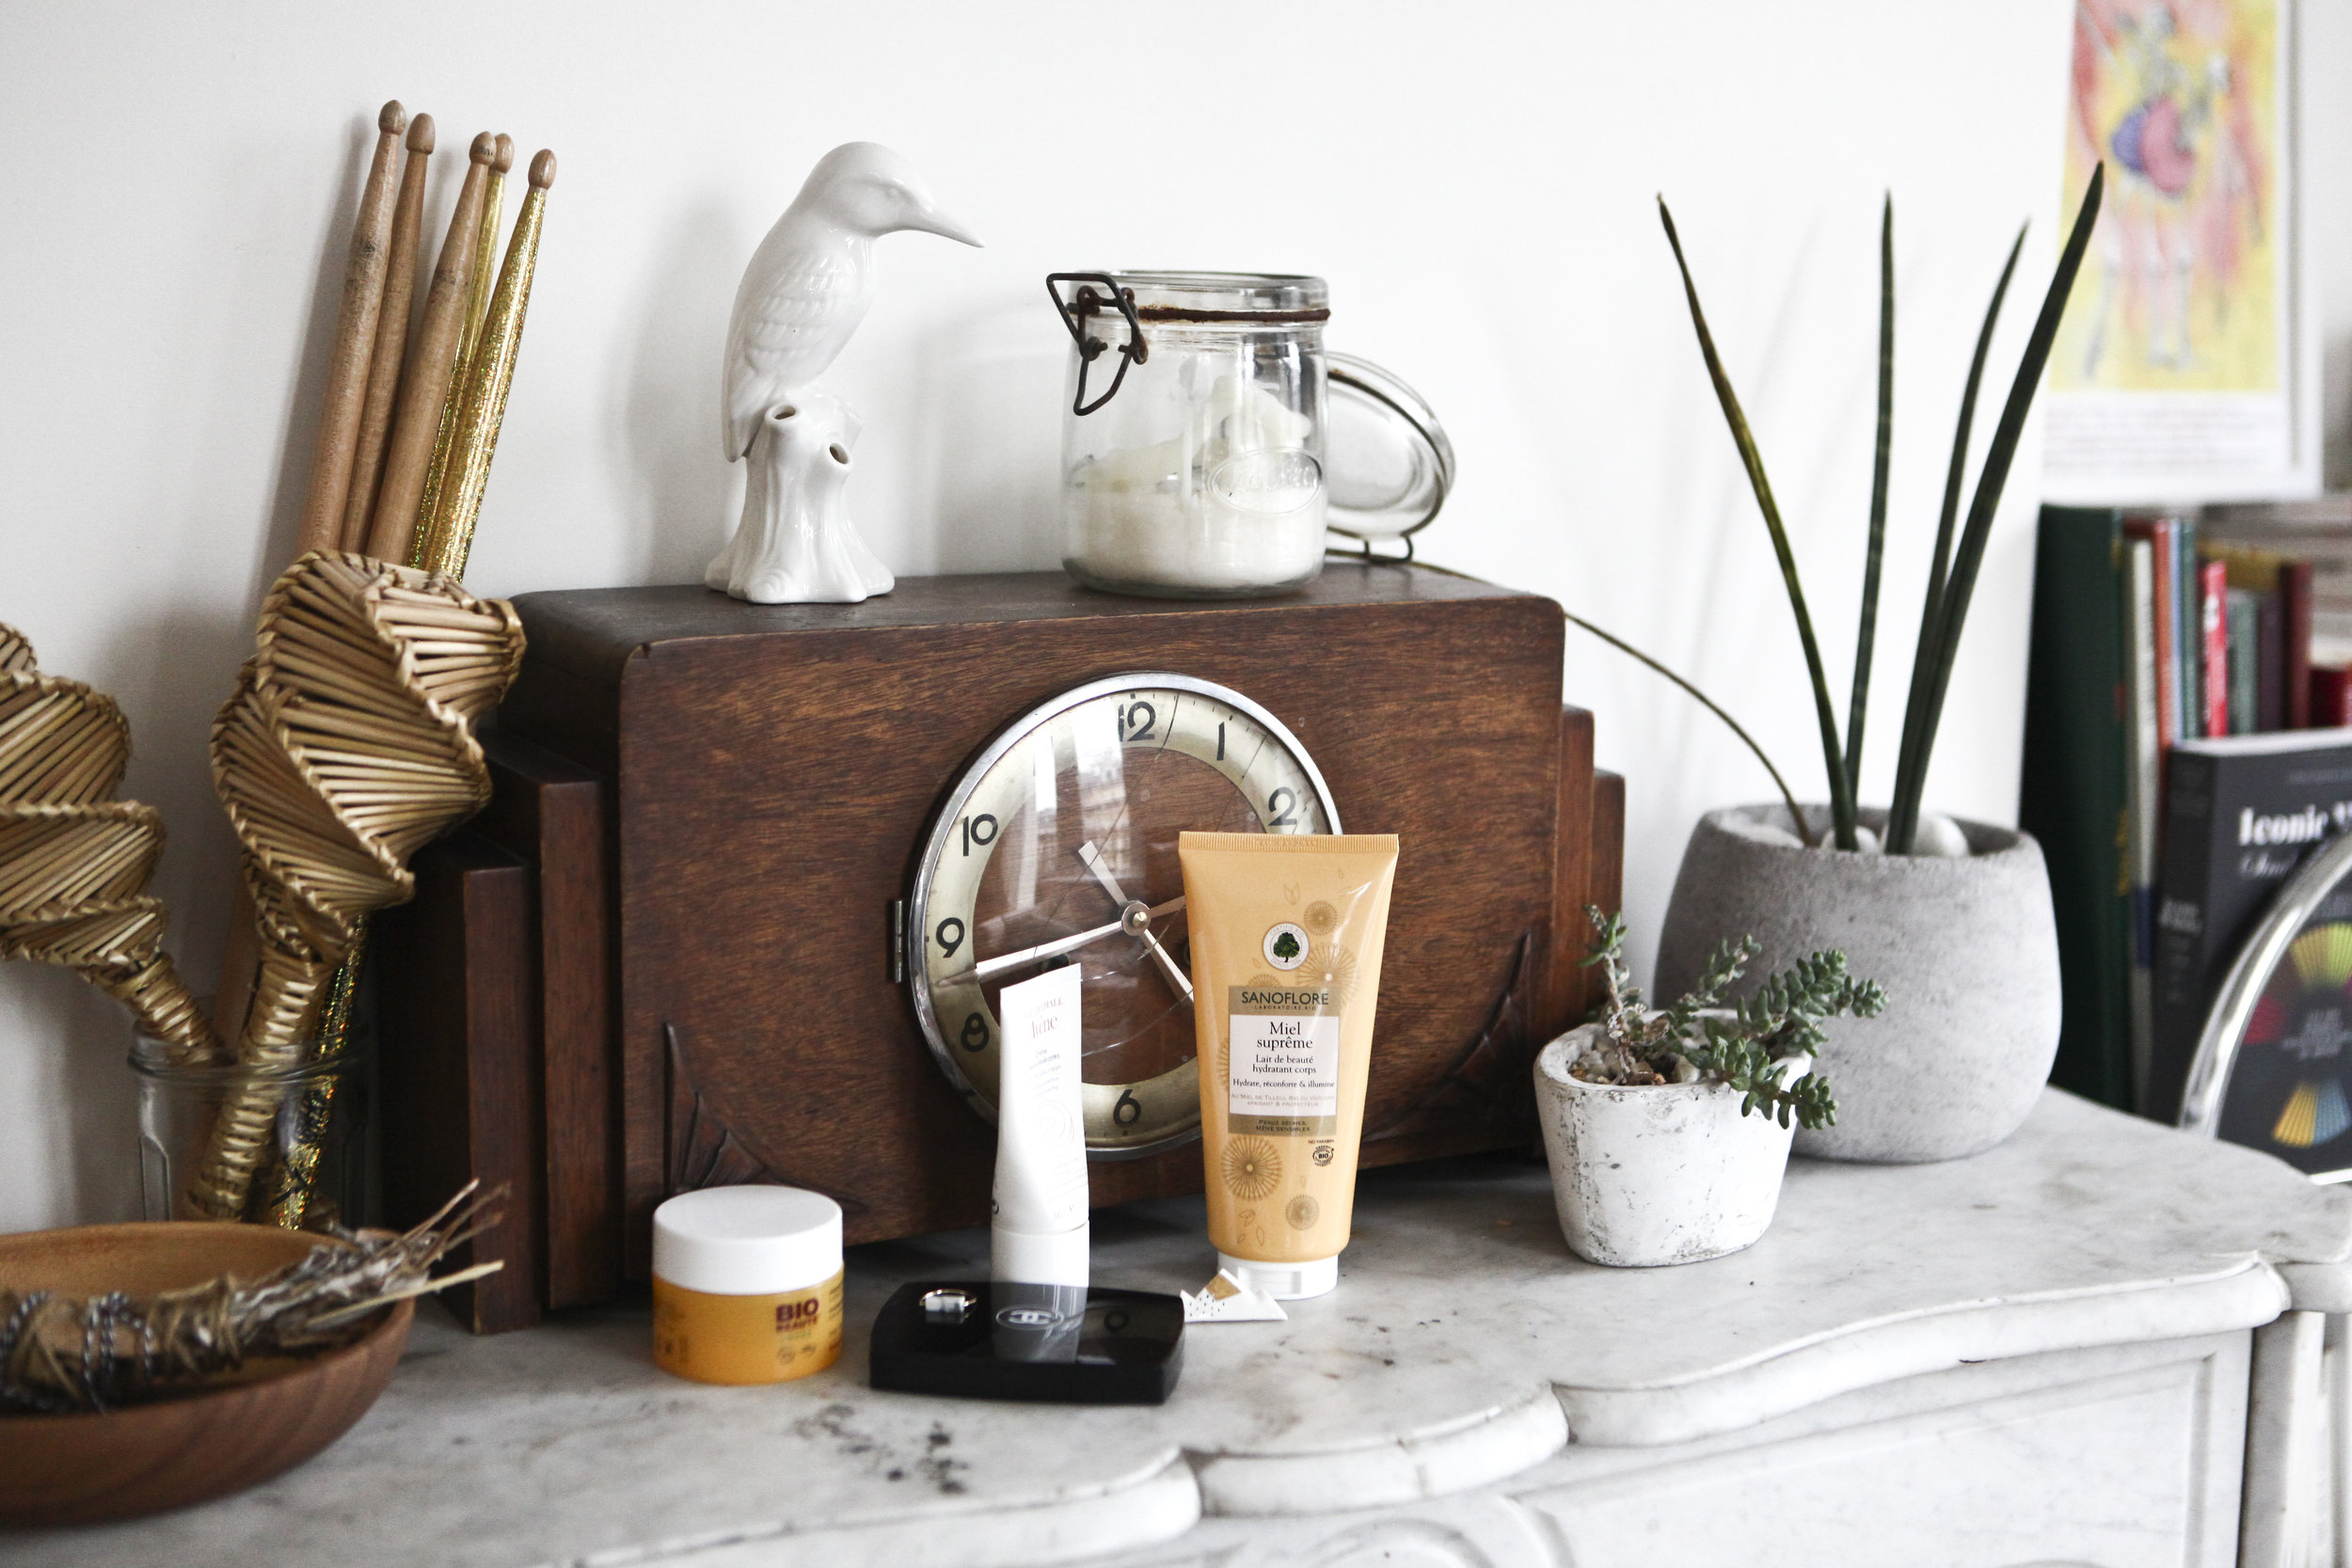 Clémence's favorite beauty products